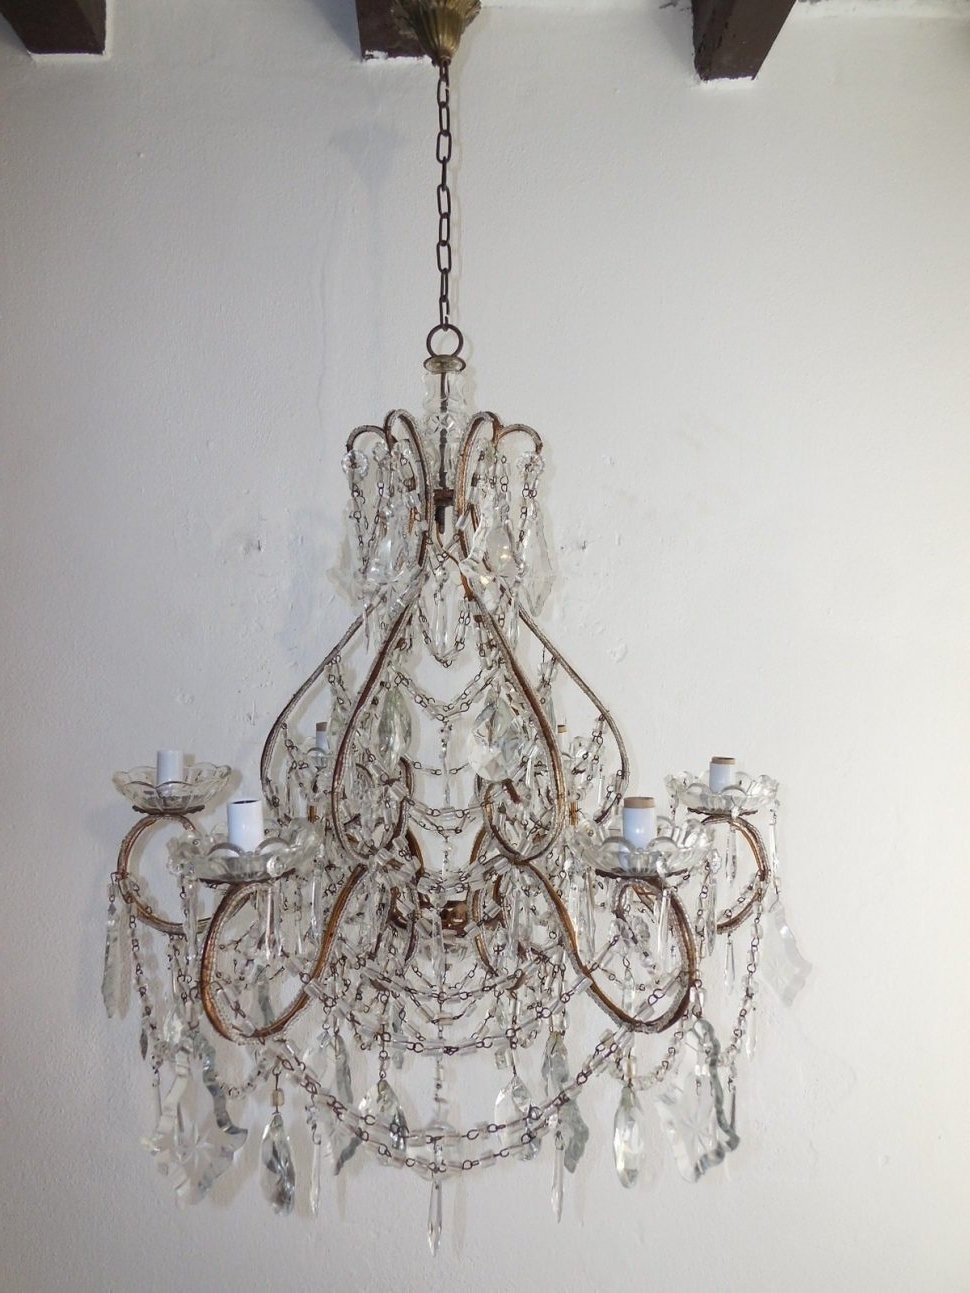 Lead Crystal Chandeliers In Latest Chandeliers : Lead Crystal Chandelier Prisms Chandeliers Design Lamp (View 4 of 20)